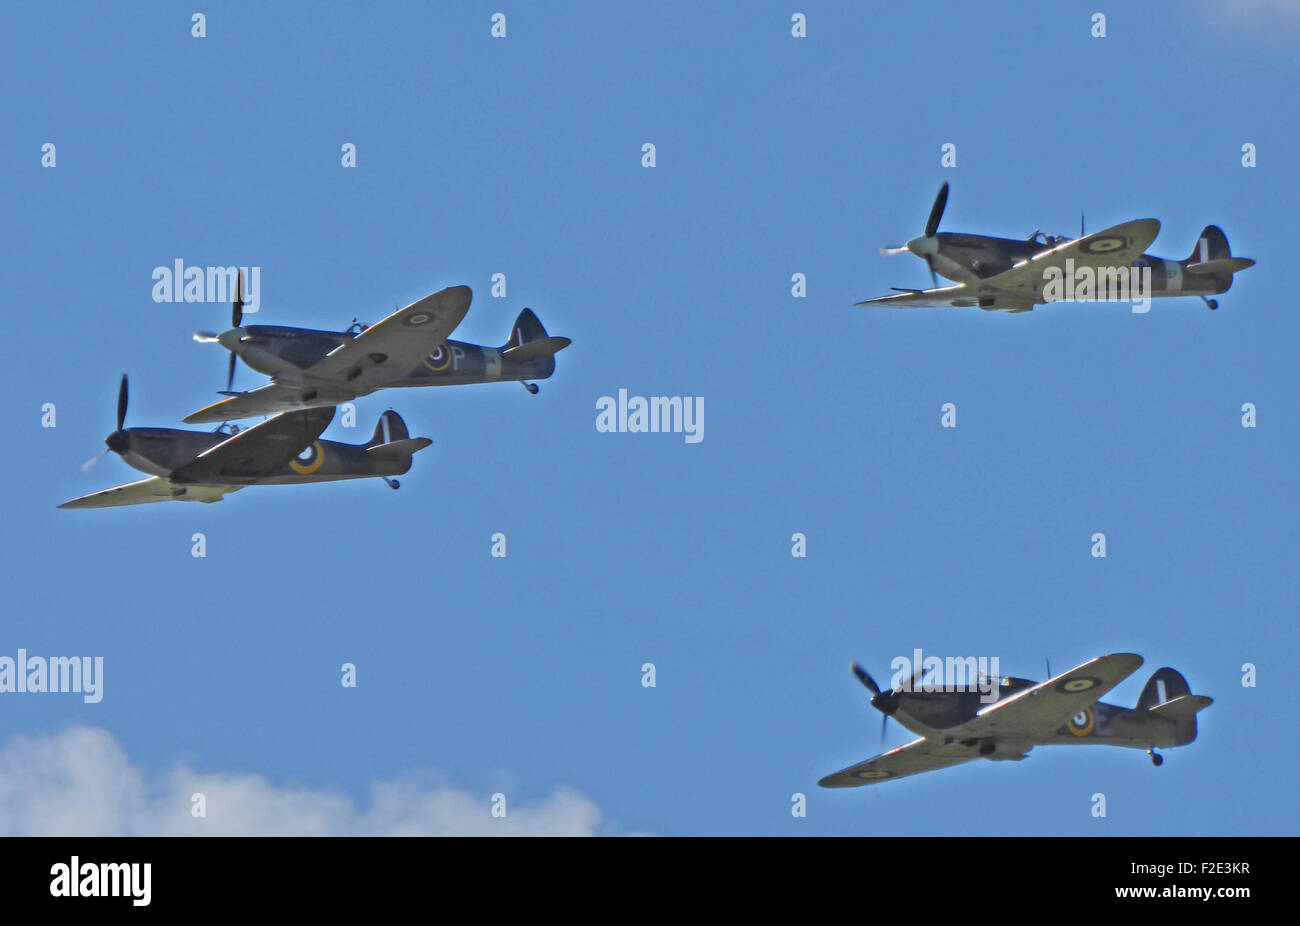 Hurricanes and Spitfires at Goodwood Battle of Britain commemorations in September 2015. - Stock Image